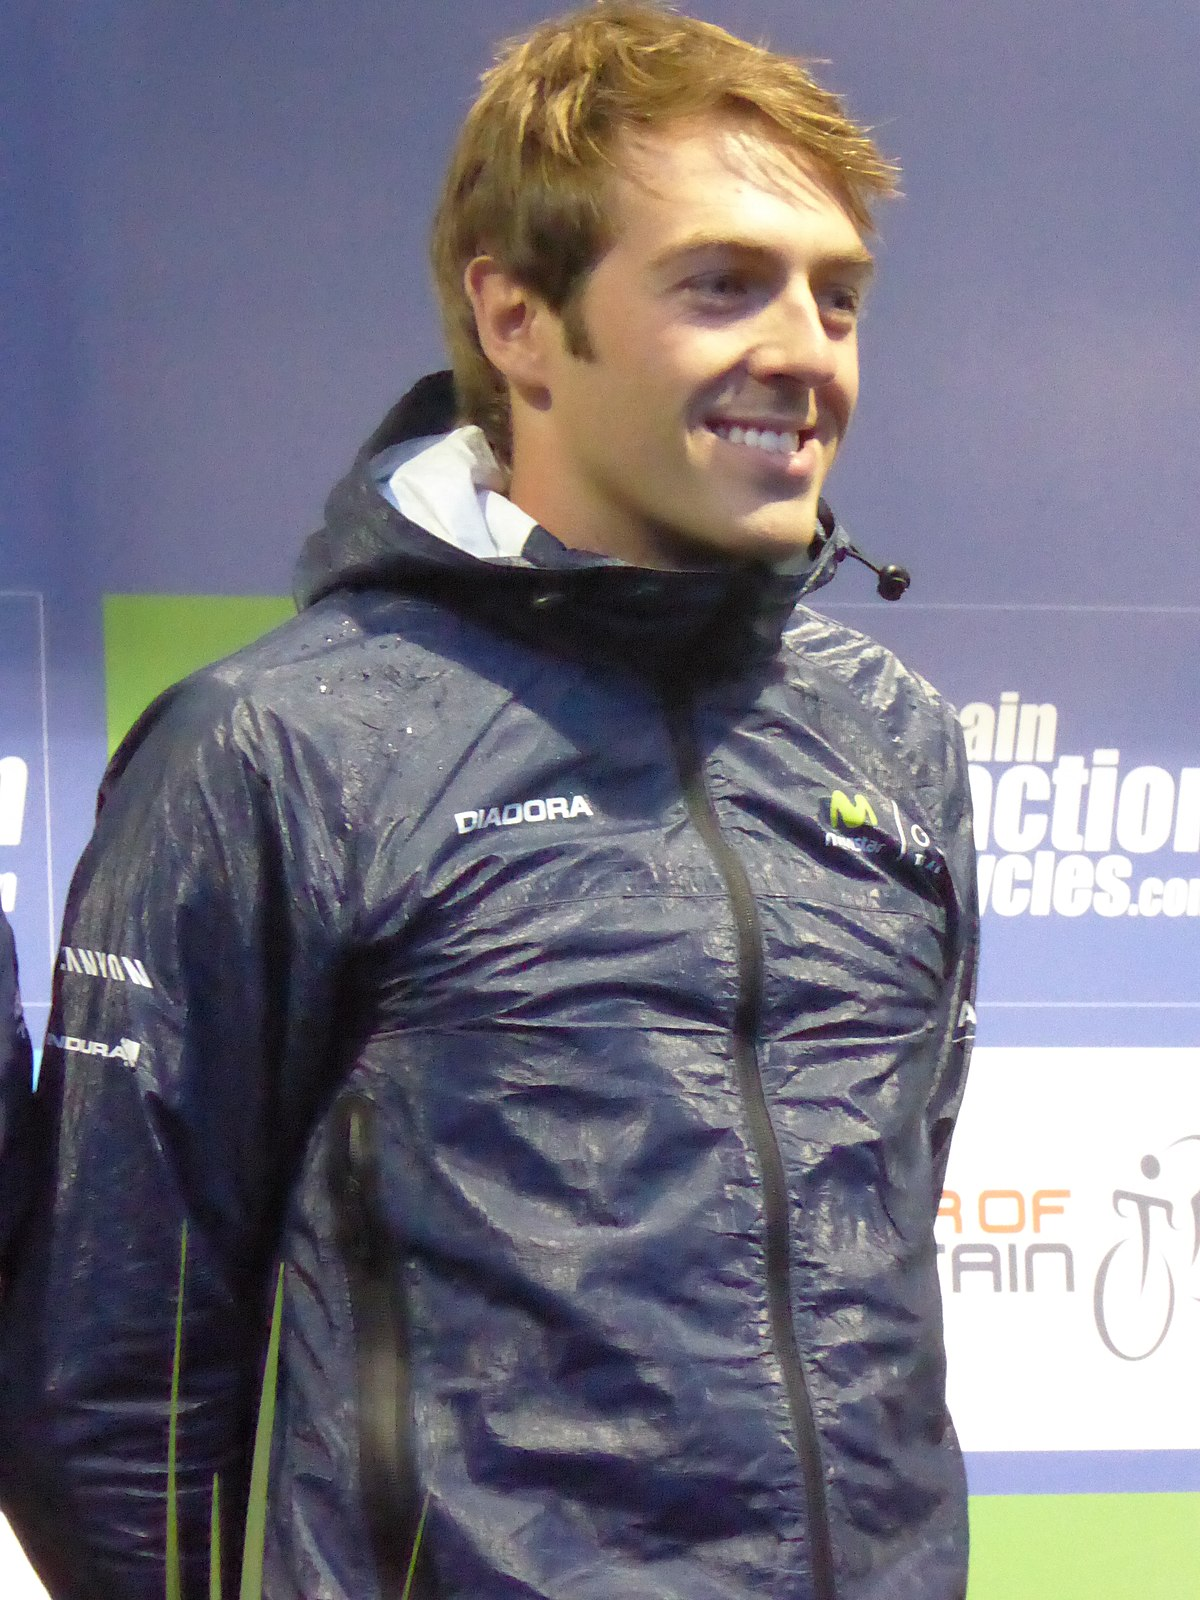 Alex Dowsett Wikipedia